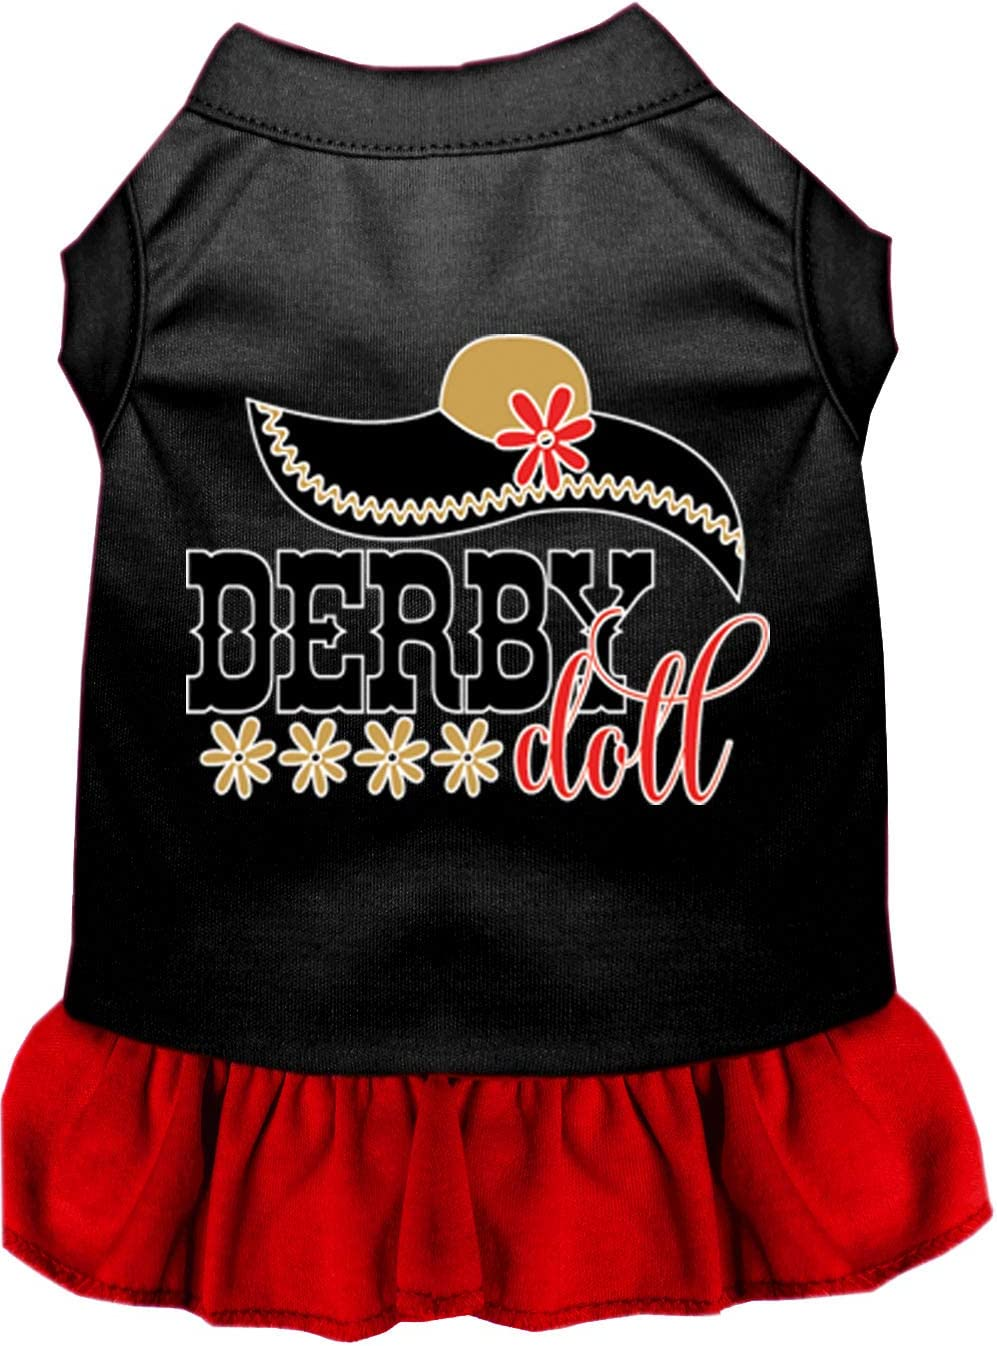 Mirage Pet Product Derby Popular popular Doll Screen Black with Challenge the lowest price Print Dress Dog